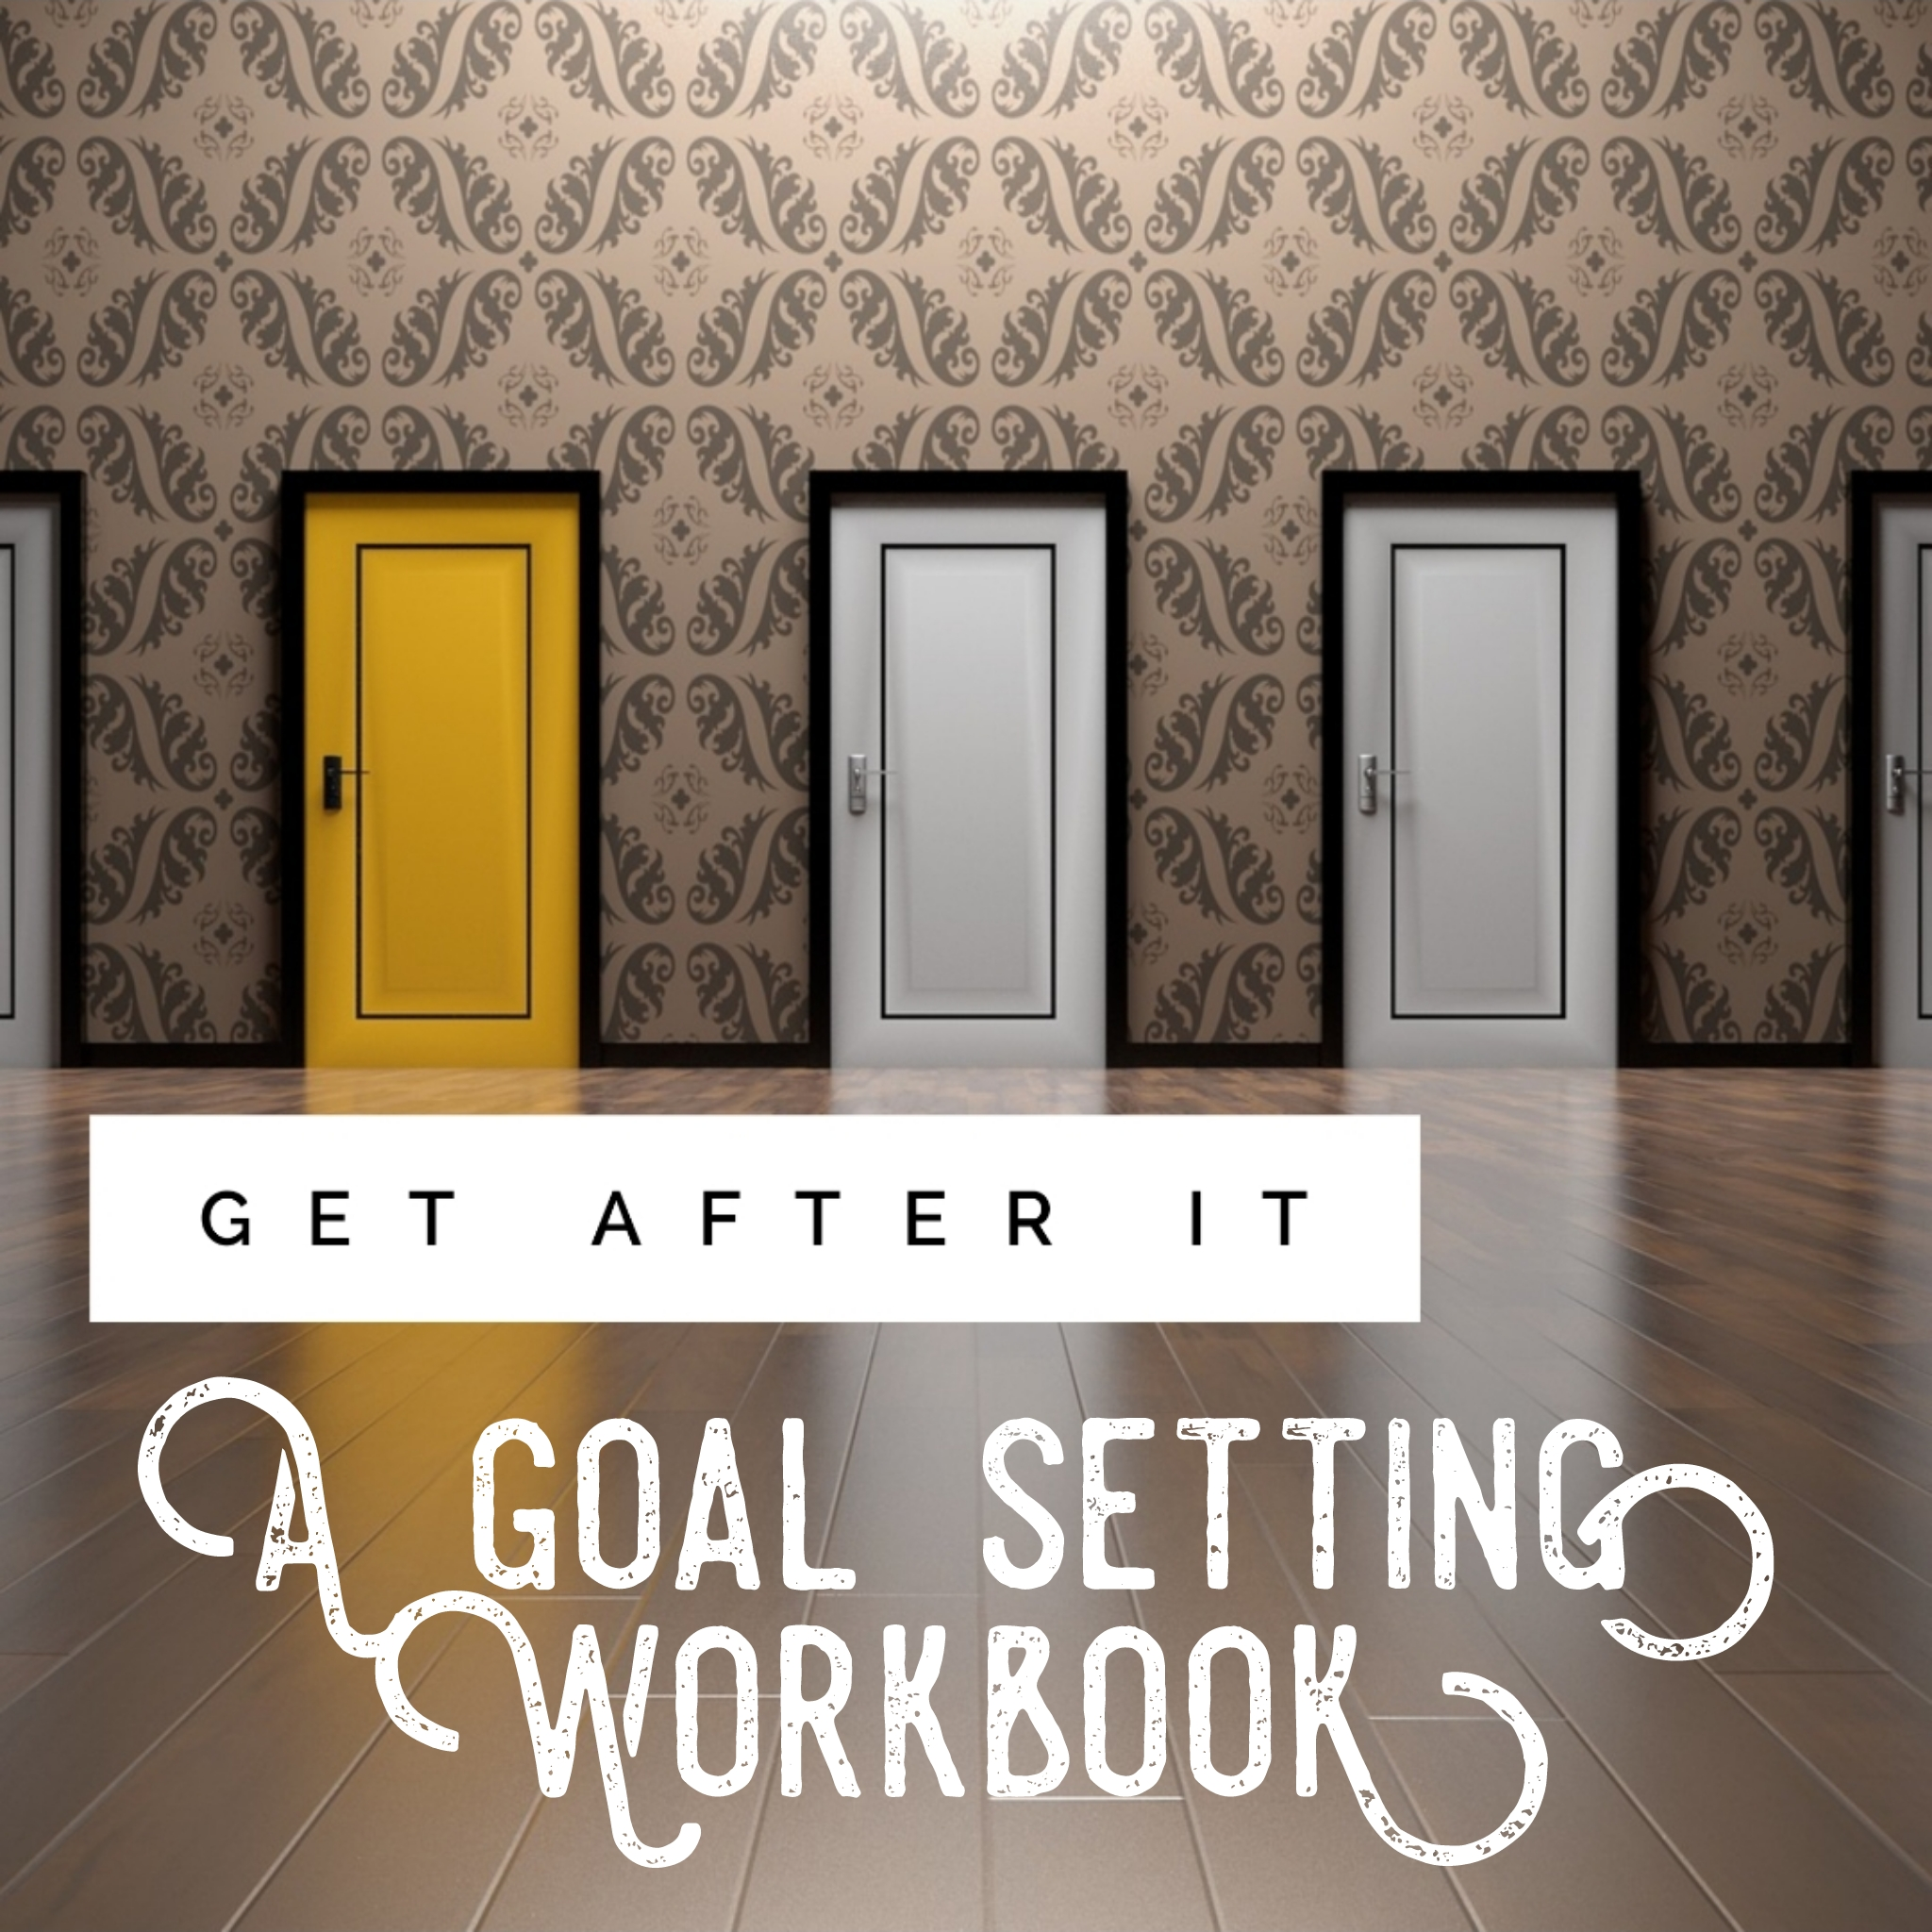 Get After It Workbook.jpg